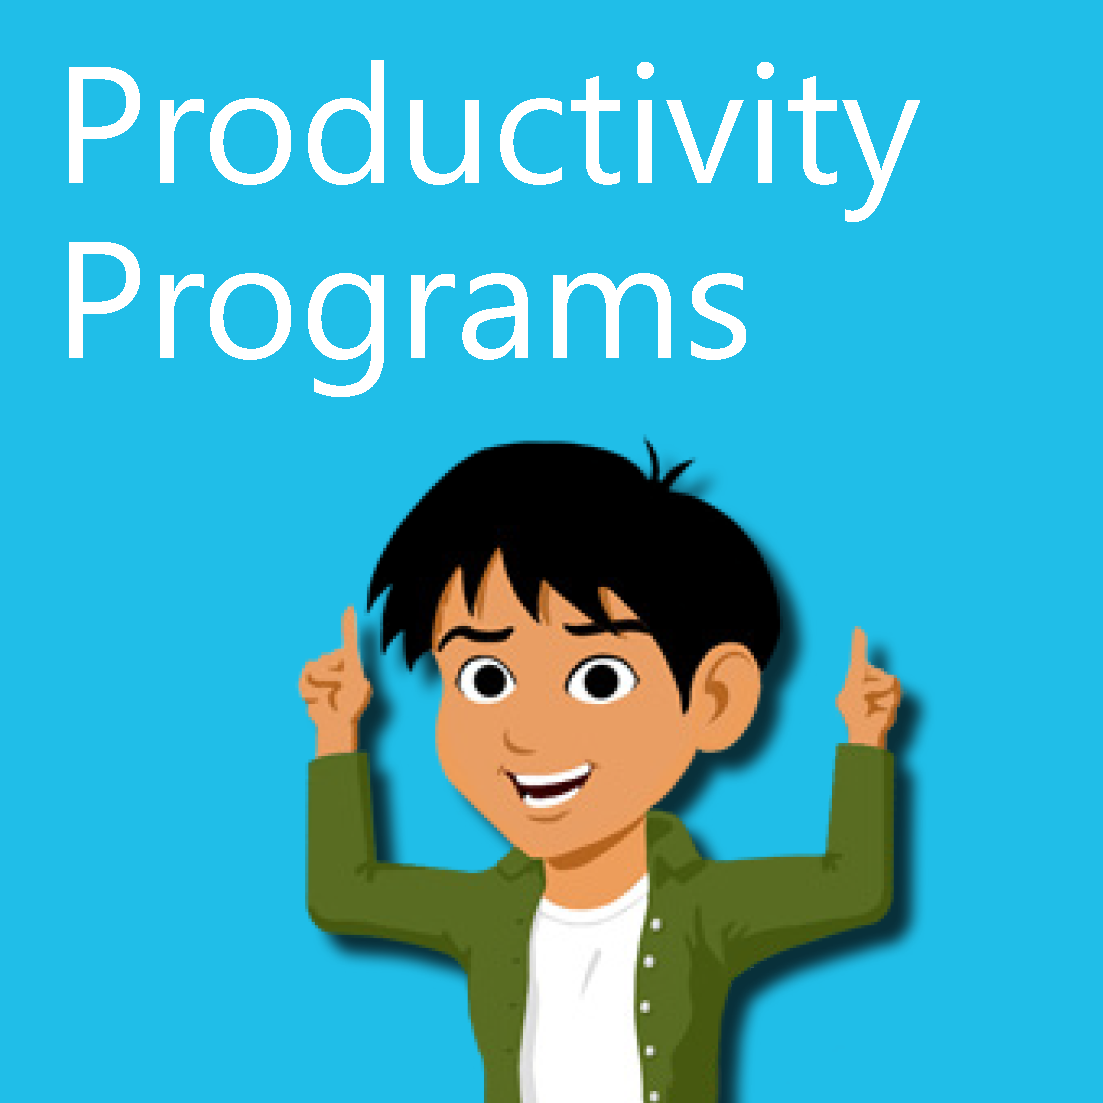 Module 1: Introduction to Productivity Programs